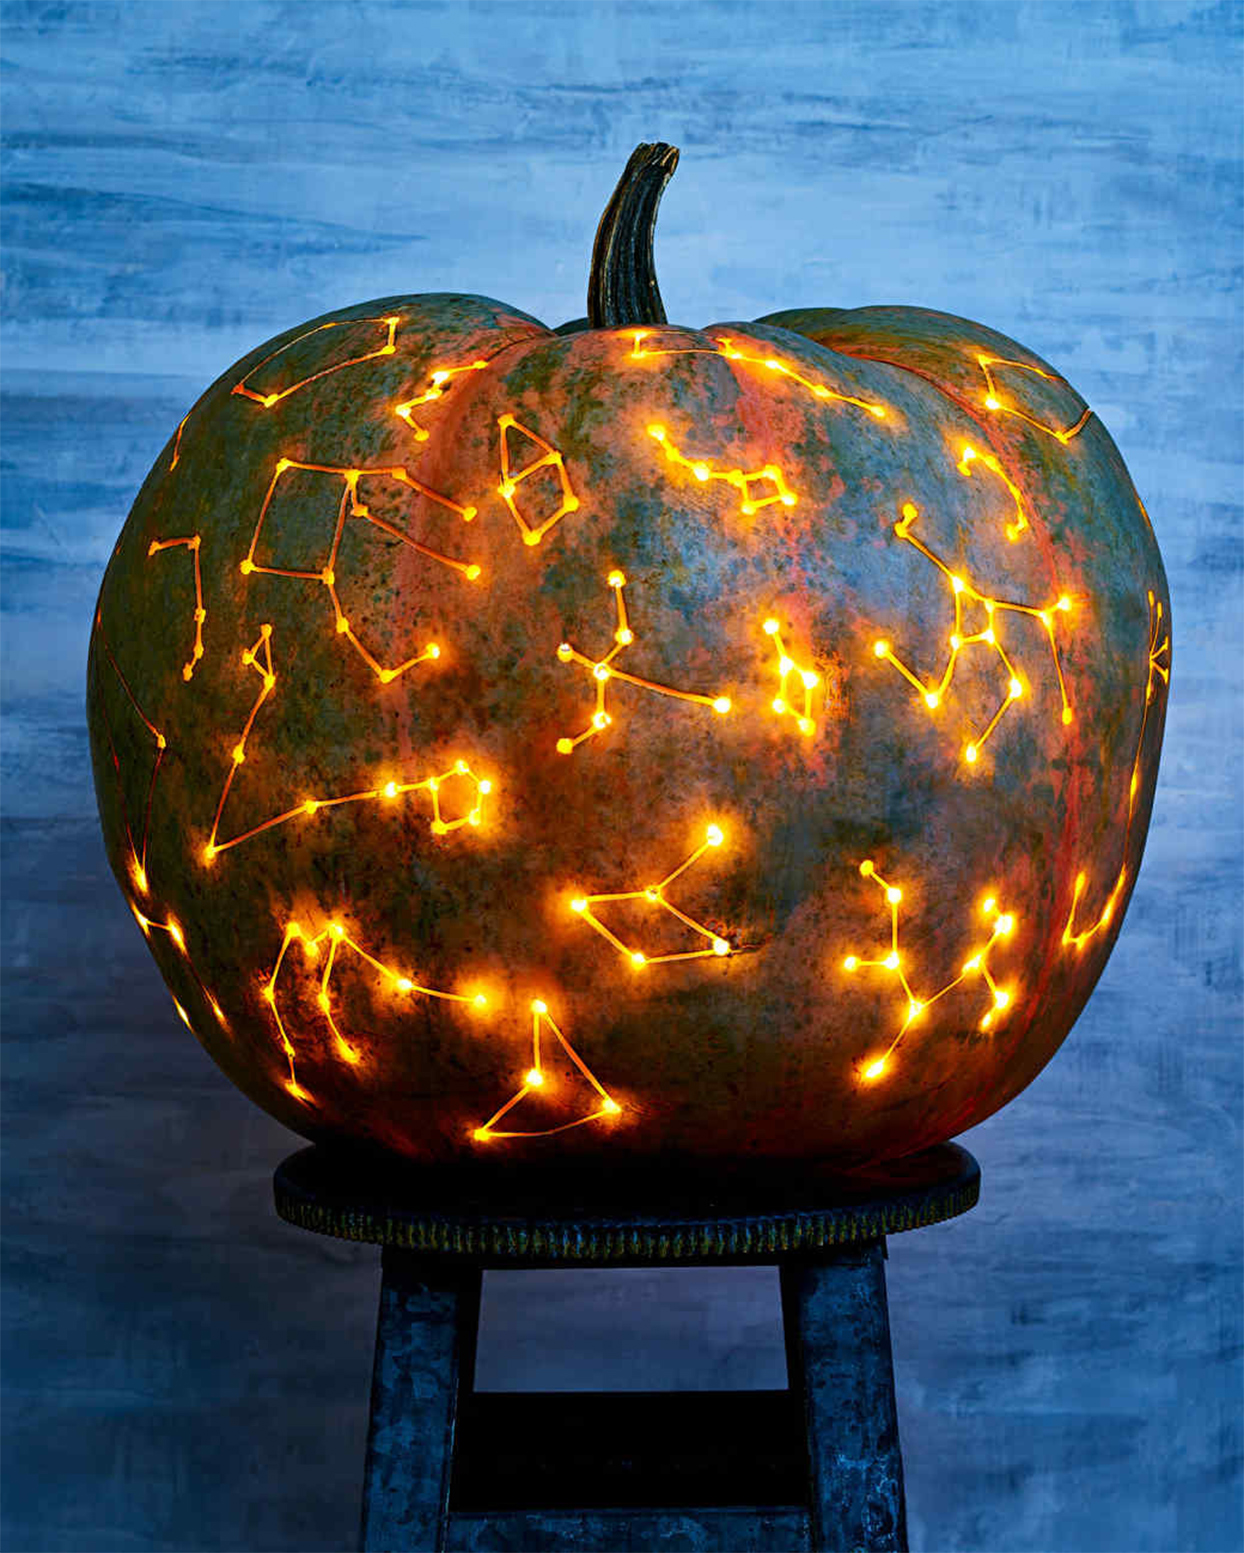 Starry-Night Pumpkin